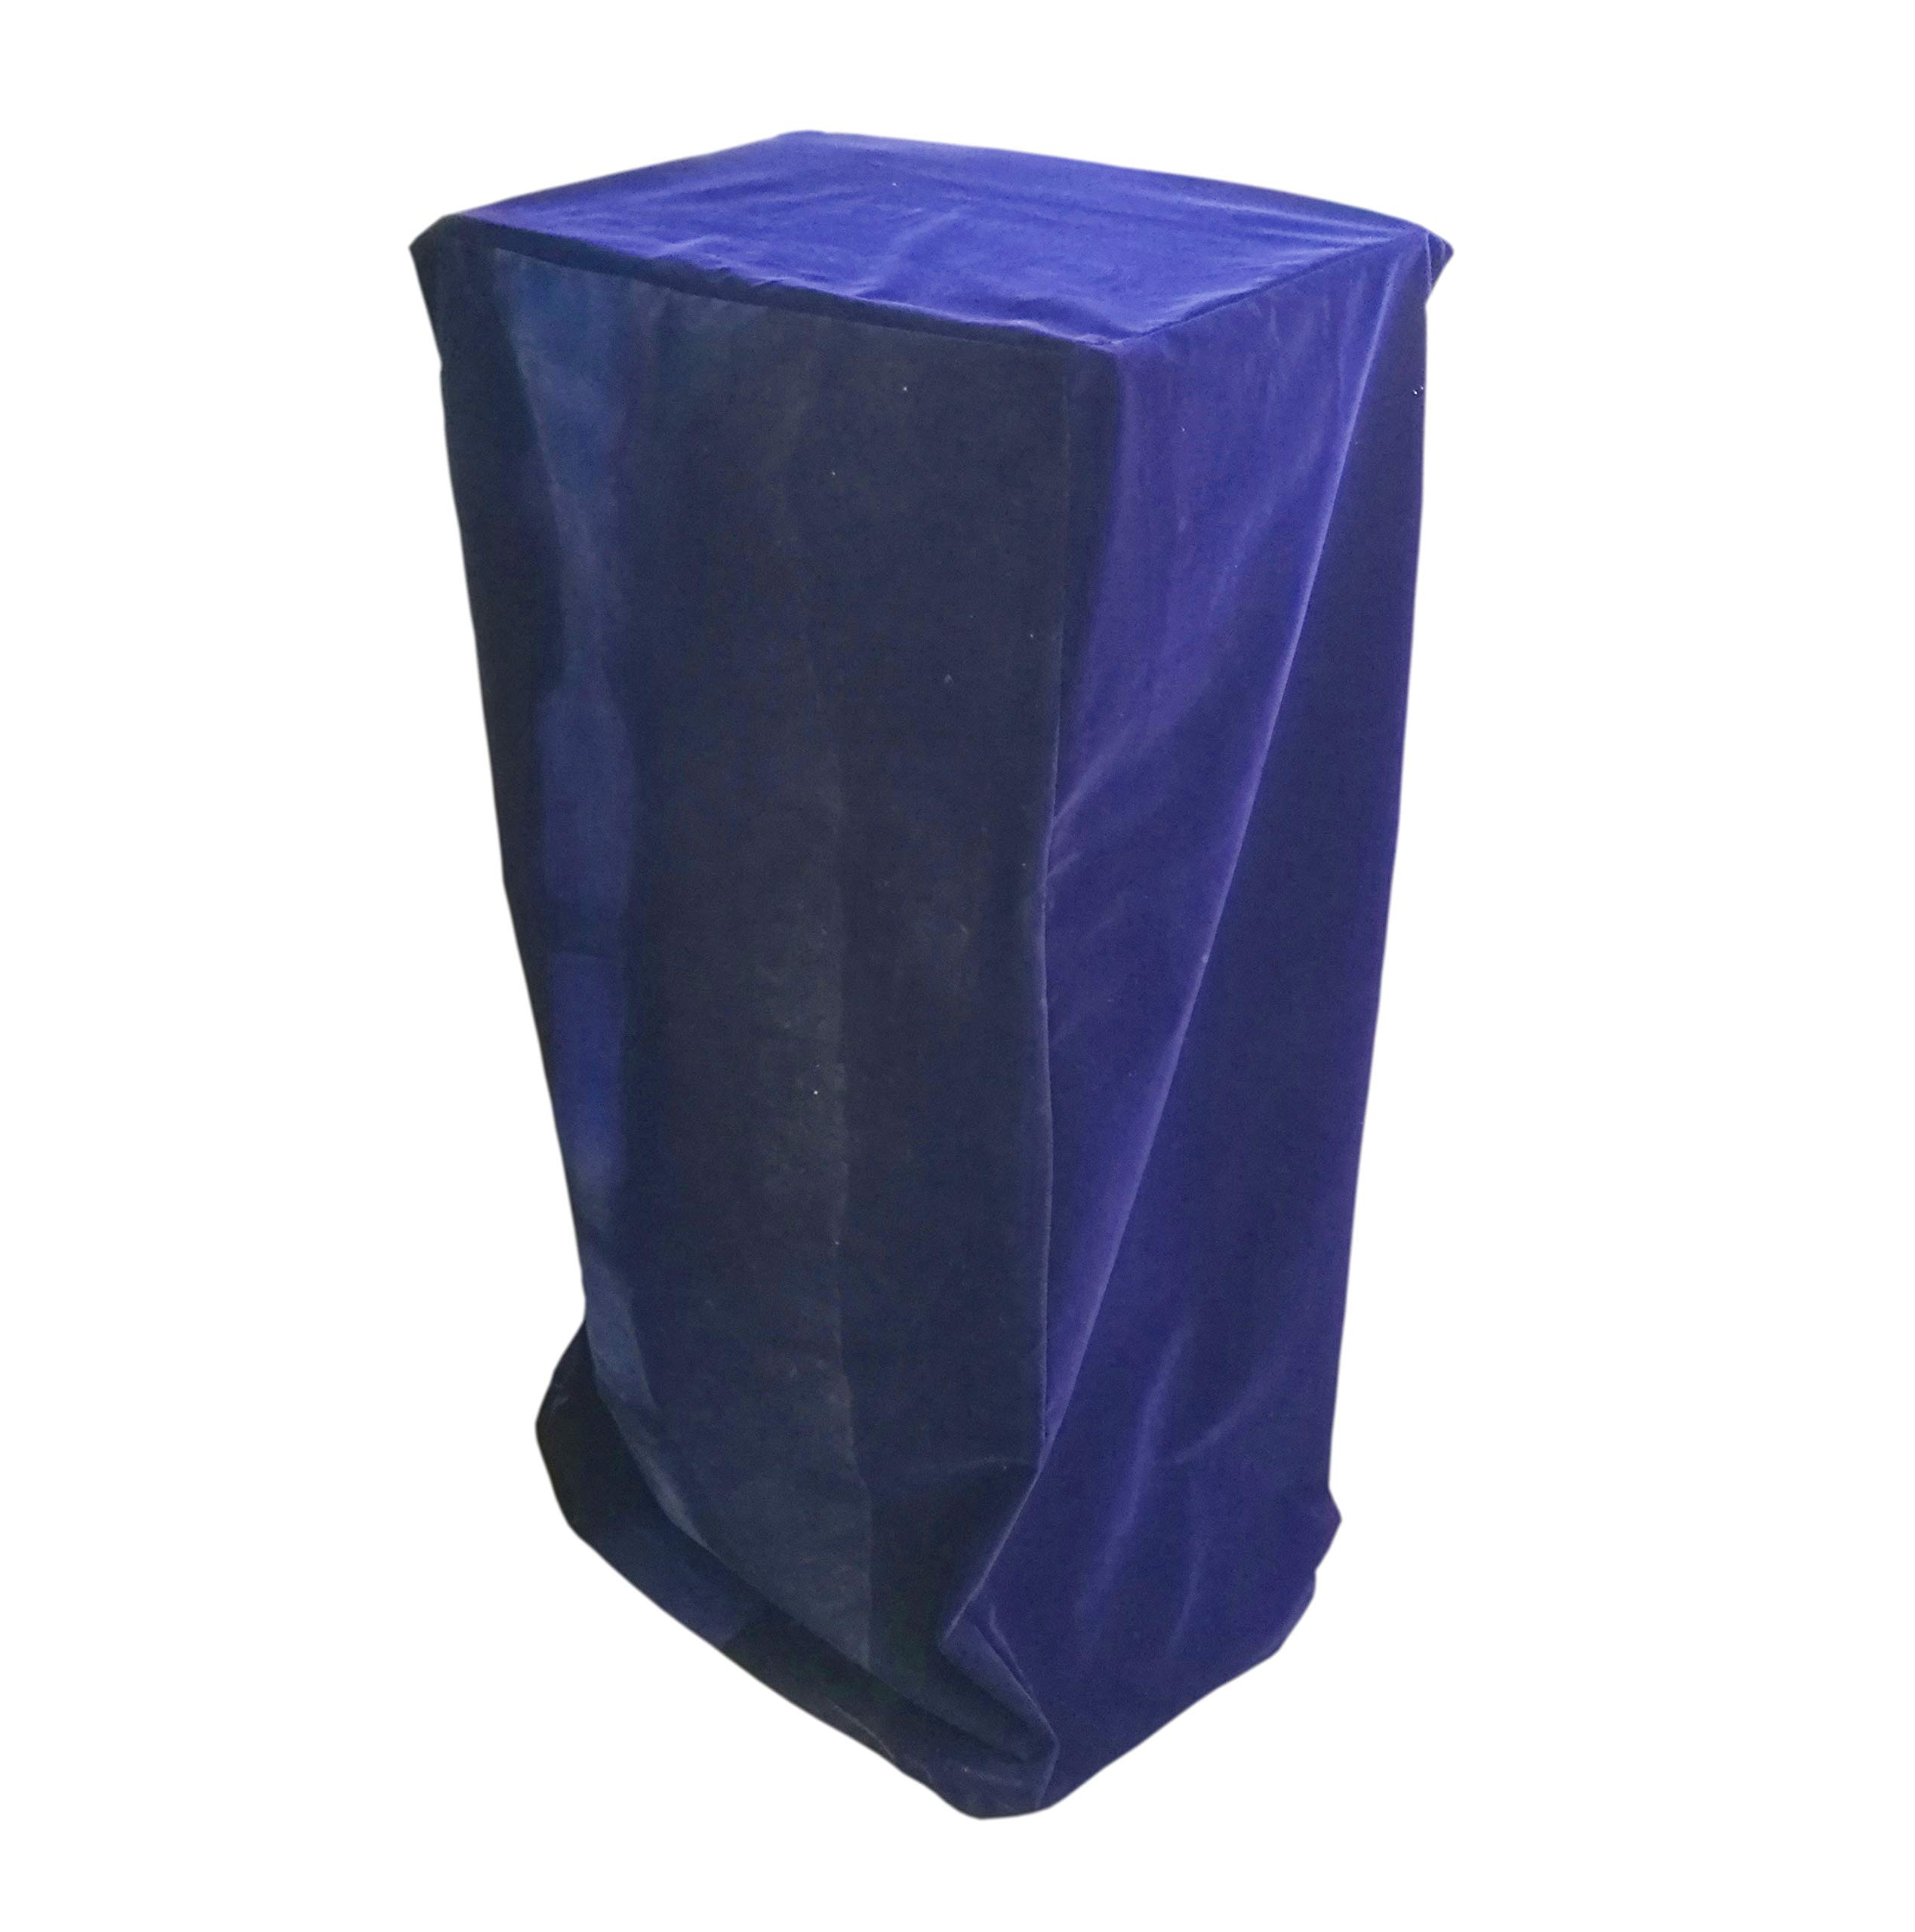 FixtureDisplays Podium Protective Cover Pulpit Cover Lectern Padded Cover 24.2''W x 49''H x 17.7''D 1803-8-BLUE-FBA Fulfilment by Amazon by FixtureDisplays